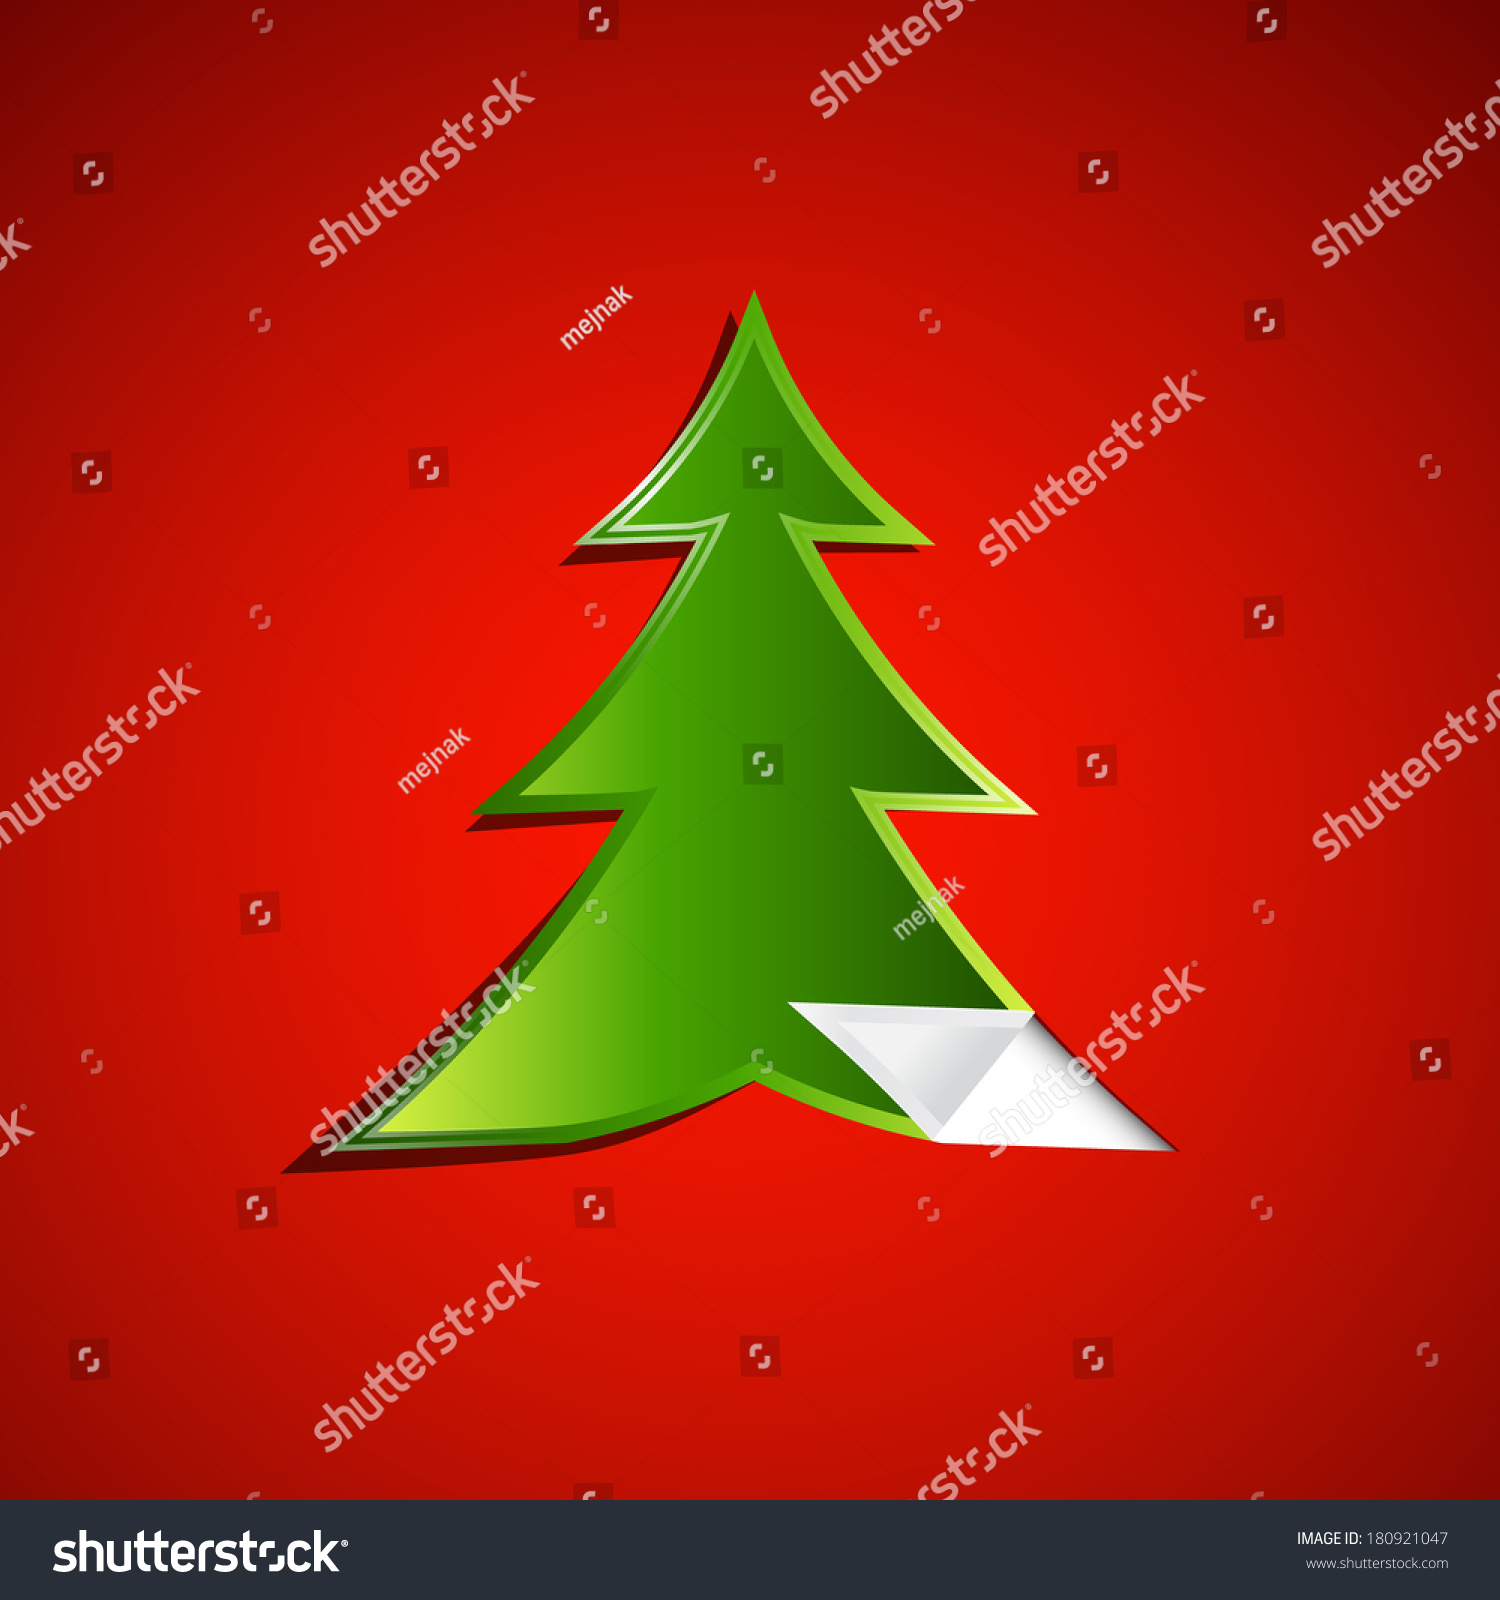 Green christmas tree on red background stock illustration for Red green christmas tree